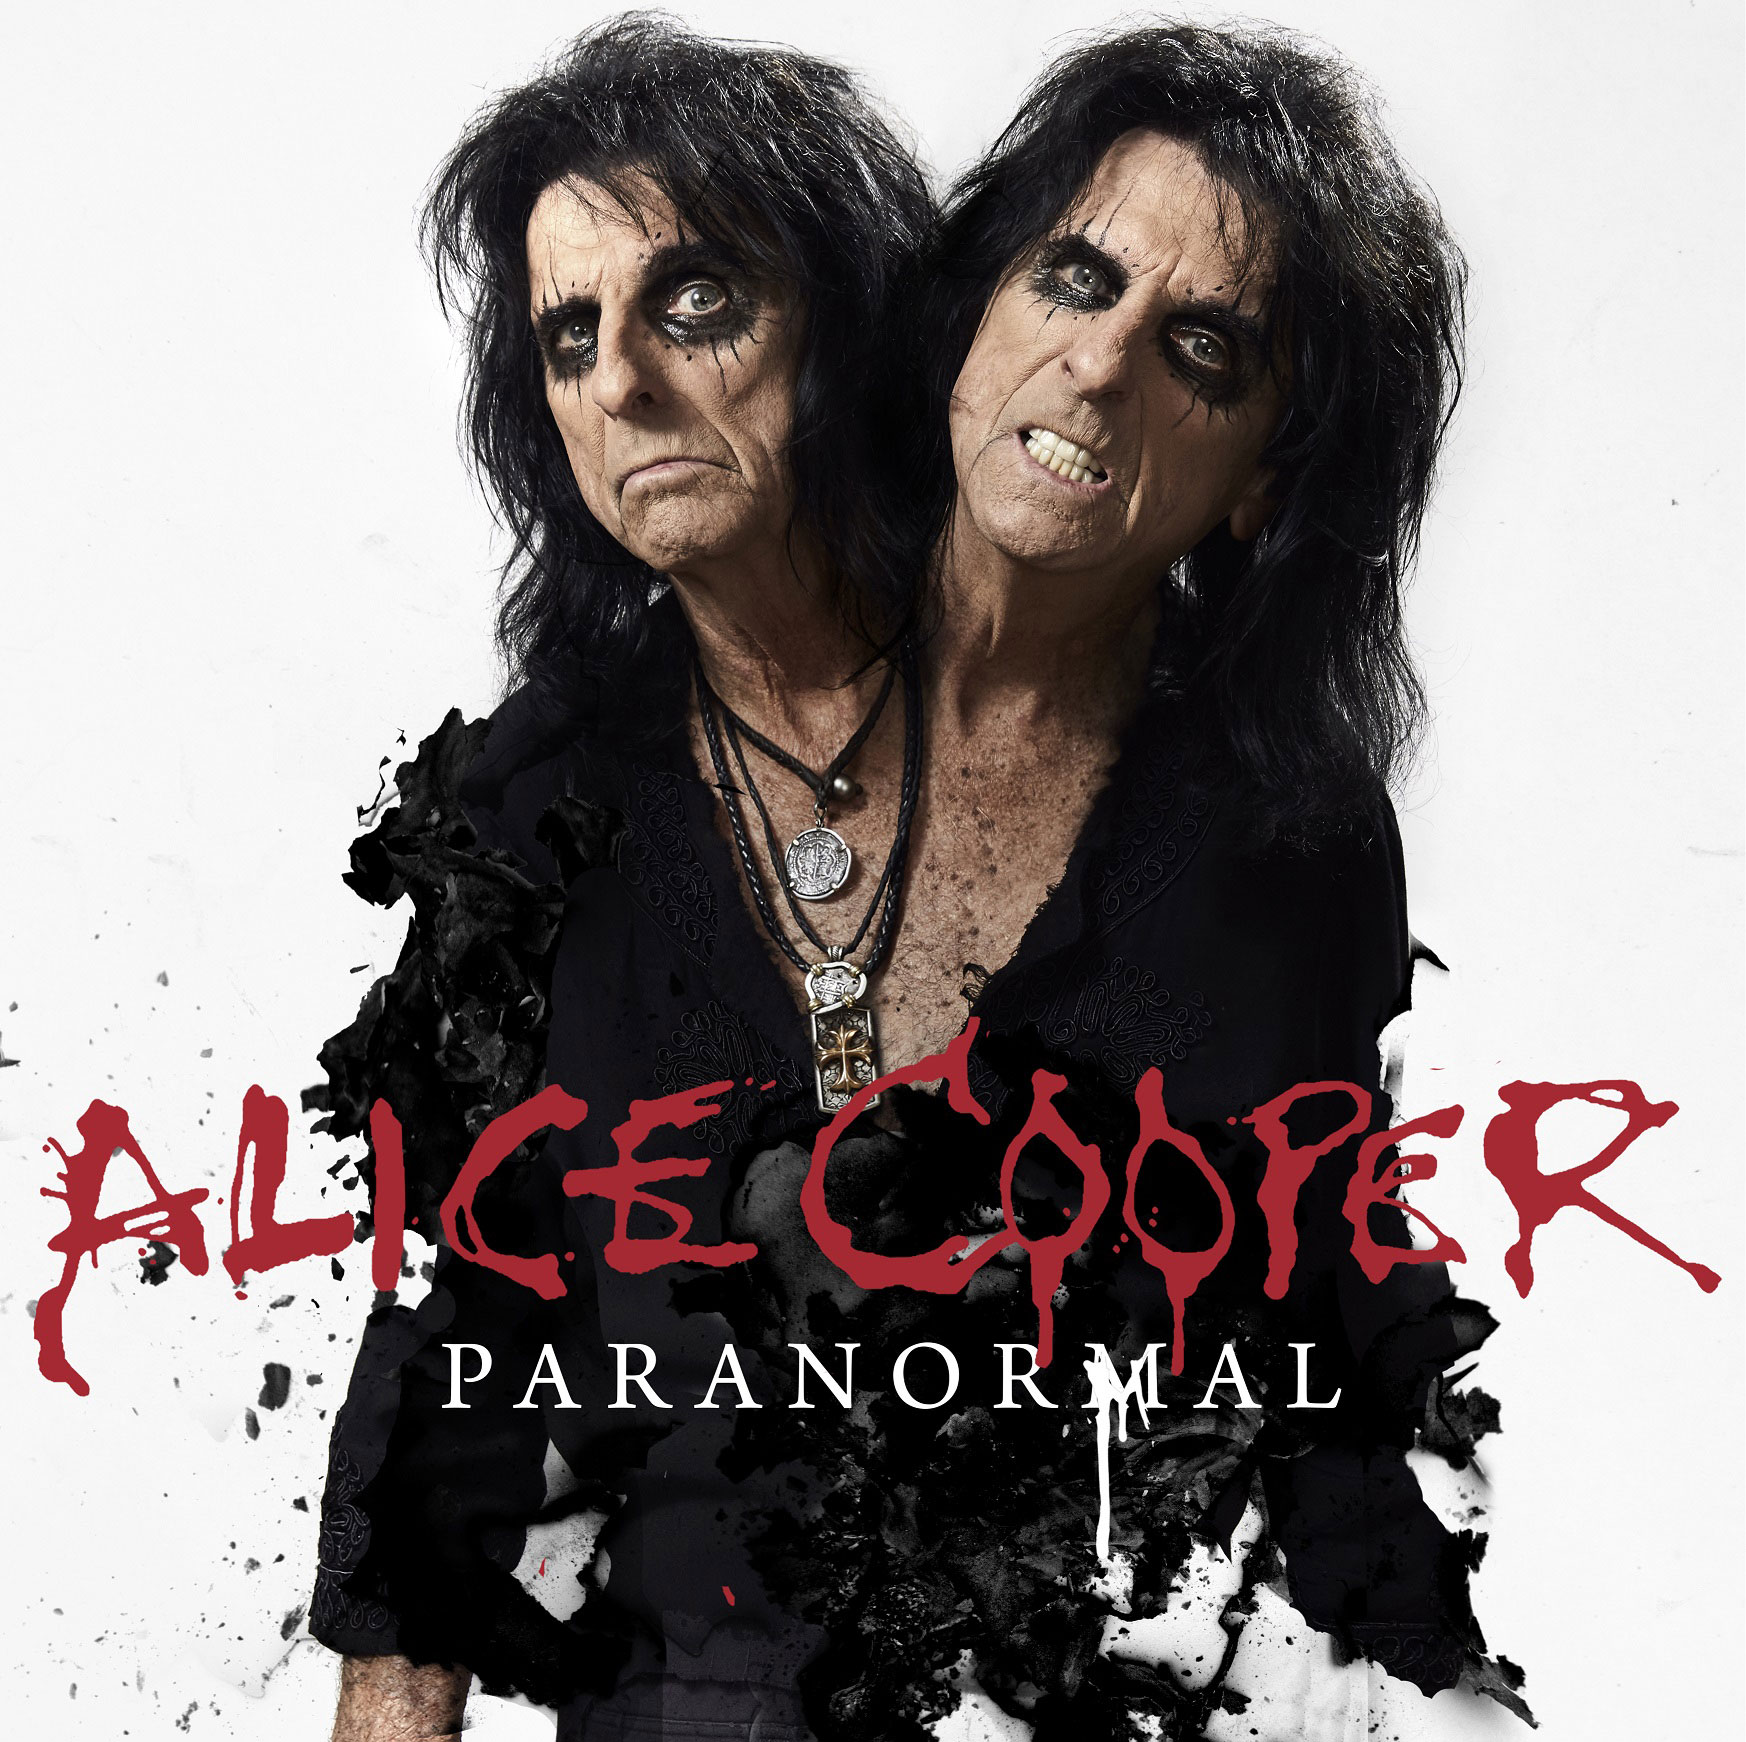 Bonus CD:Studio Recordings with the Original Alice Cooper Band1. Genuine American Girl2. You And All Of Your FriendsLive in Columbus with the current Alice Cooper band3. No More Mr. Nice Guy4. Under My Wheels5. Billion Dollar Babies6. Feed My Frankenstein7. Only Woman Bleed8. School's Out